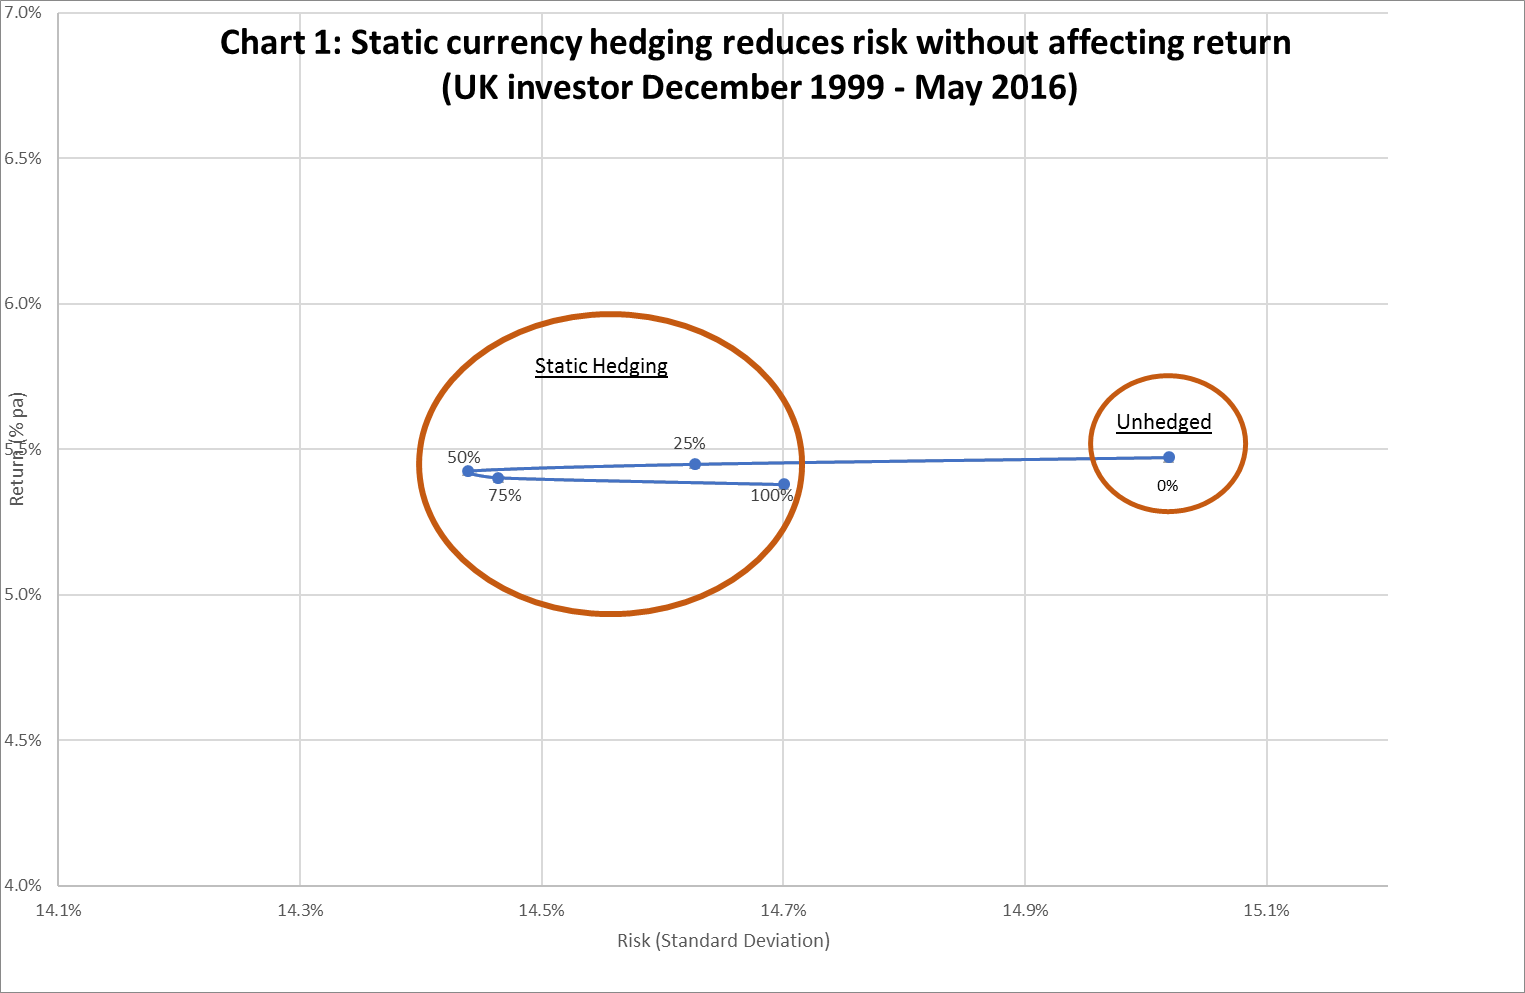 The chart shows that, between December 1999 – May 2016, increasing the currency hedge percentage would have reduced portfolio risk without impacting realised portfolio return.